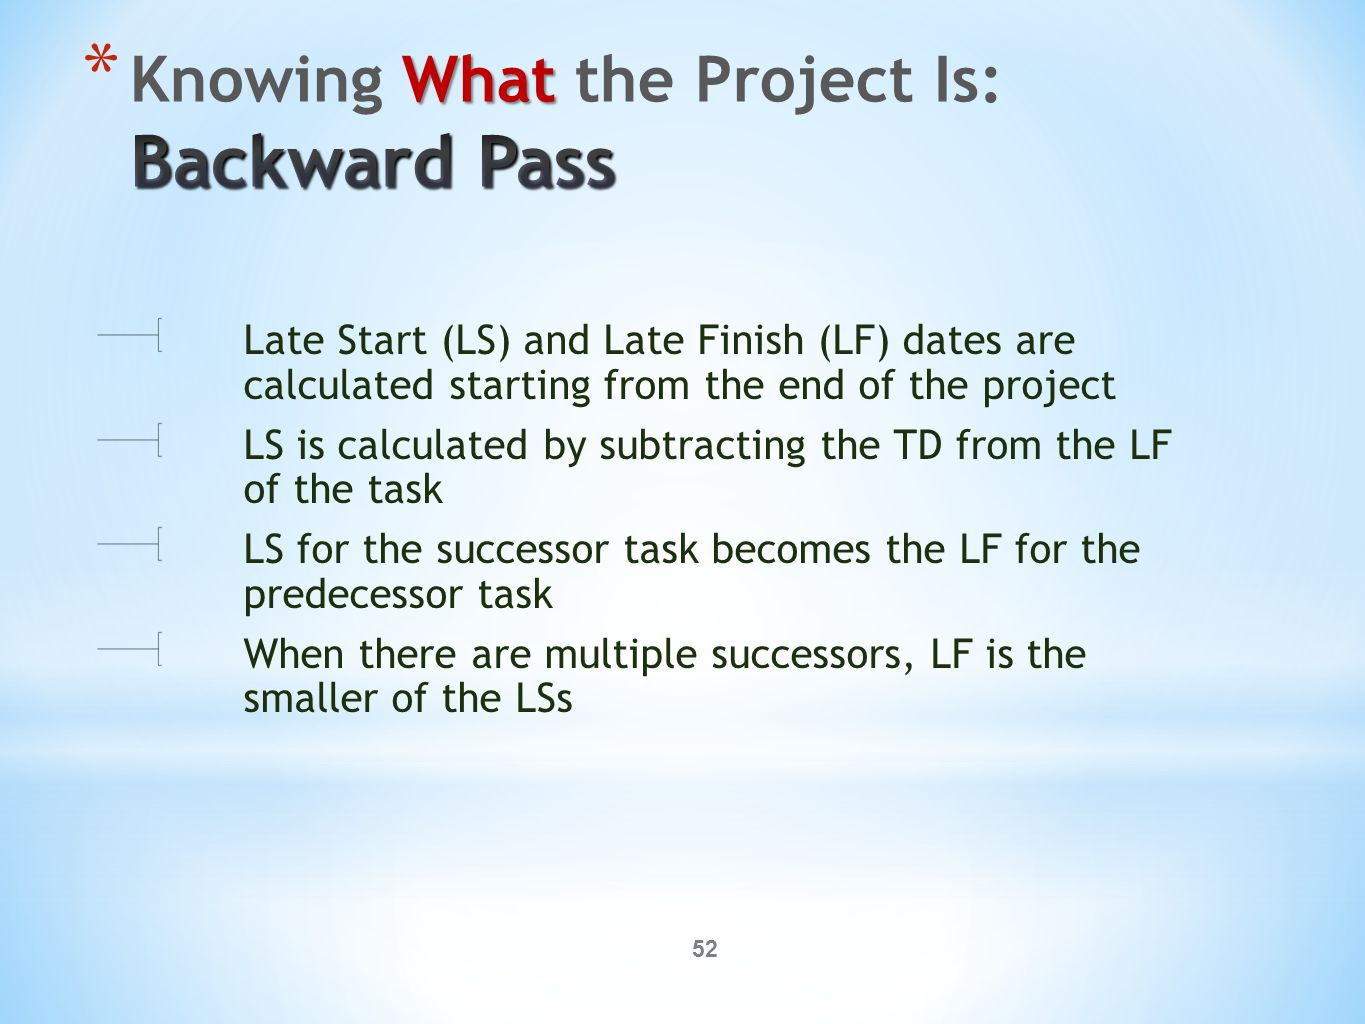 52 Late Start (LS) and Late Finish (LF) dates are calculated starting from the end of the project LS is calculated by subtracting the TD from the LF of the task LS for the successor task becomes the LF for the predecessor task When there are multiple successors, LF is the smaller of the LSs